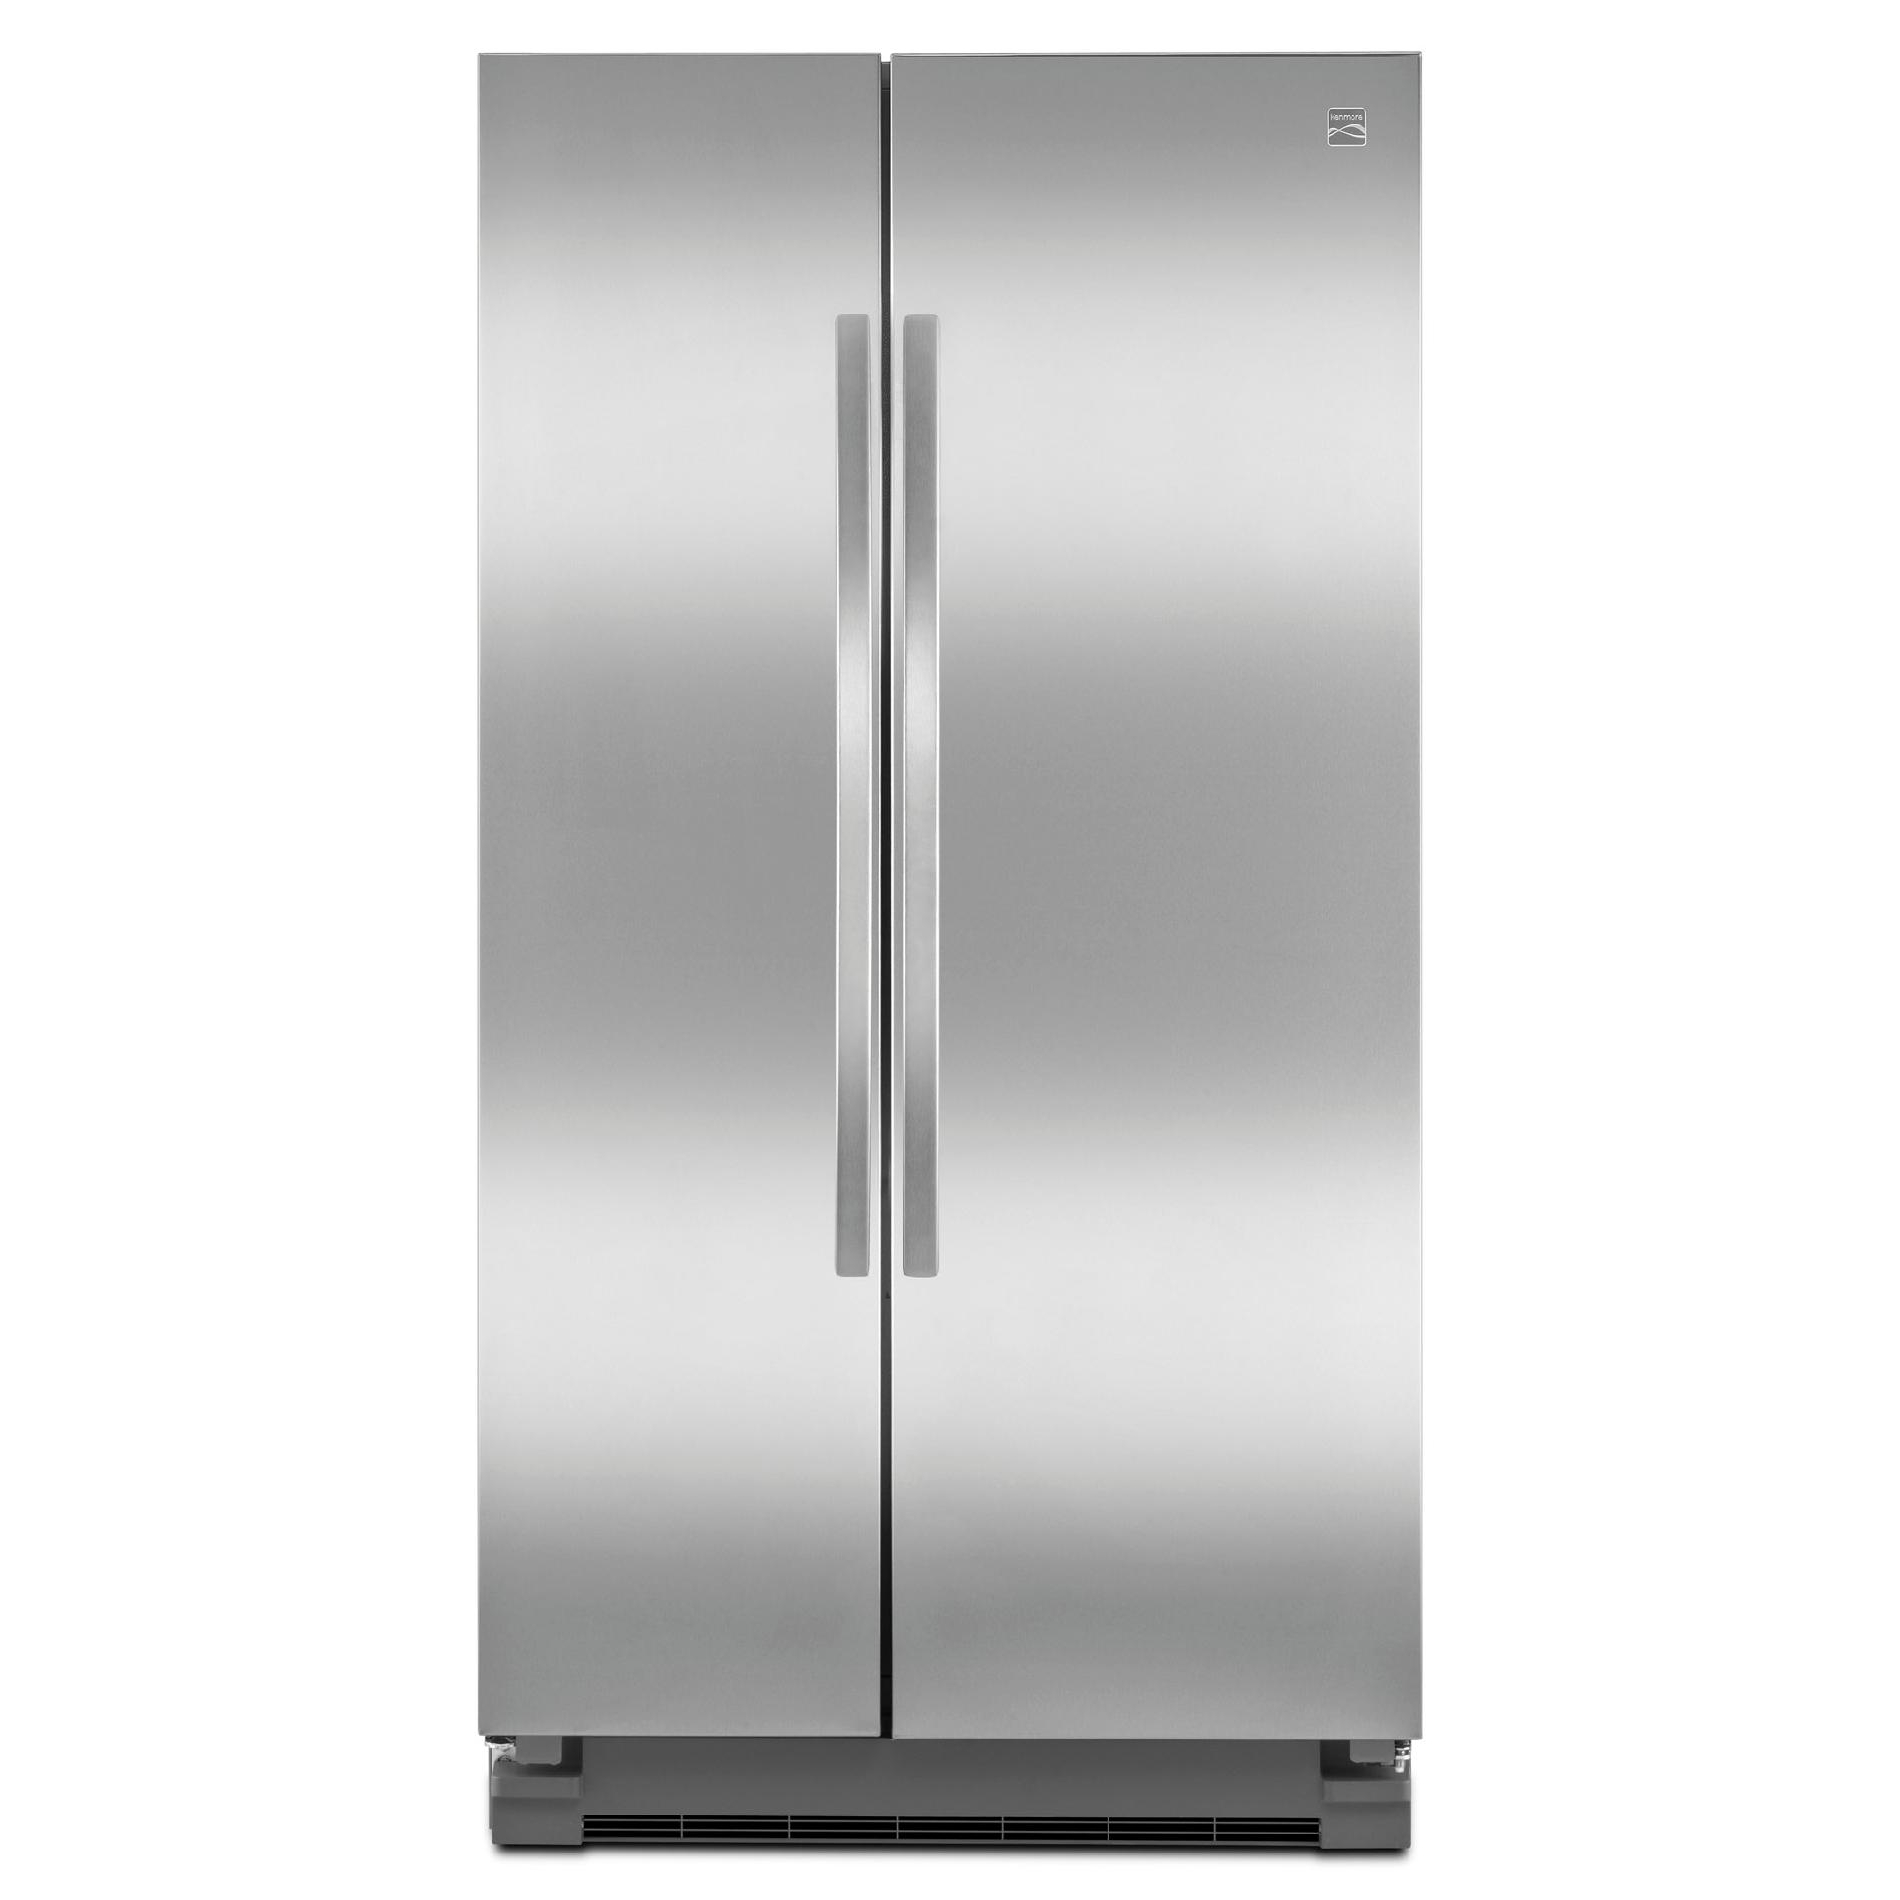 41153-25-cu-ft-Side-by-Side-Refrigerator-Stainless-Steel